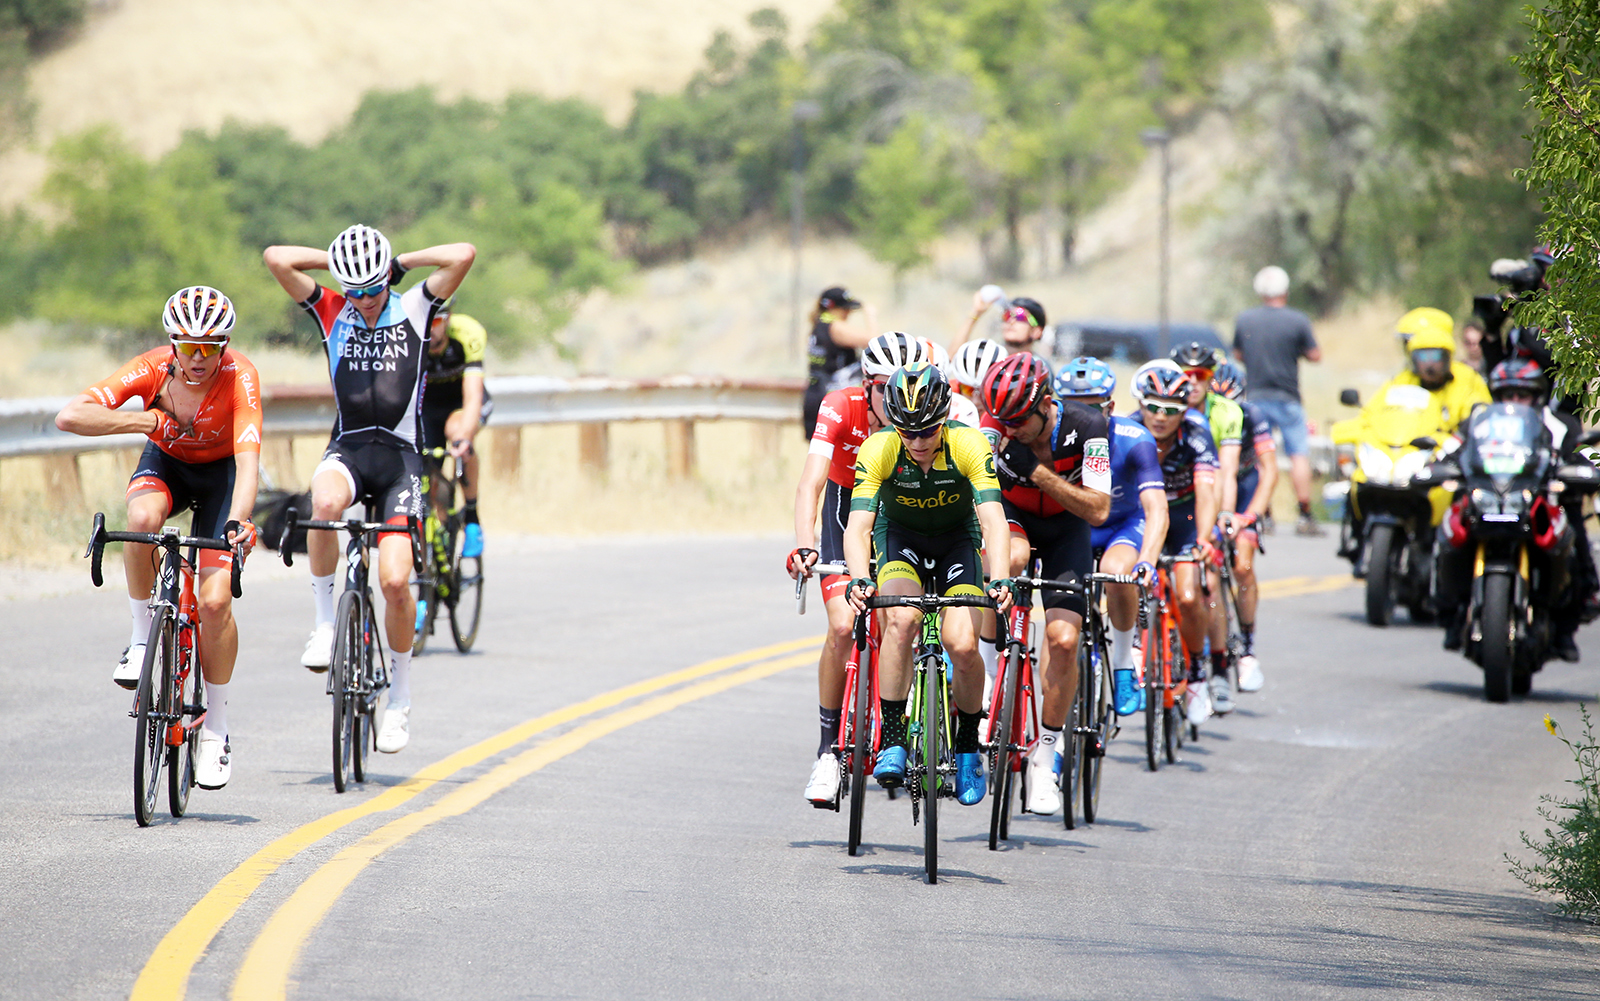 The break gets ice socks and some talks to there DSs via race radio. 2018 Tour of Utah Stage 4, August 8, 2018, Salt Lake City, Utah. Photo by Cathy Fegan-Kim, cottonsoxphotography.net